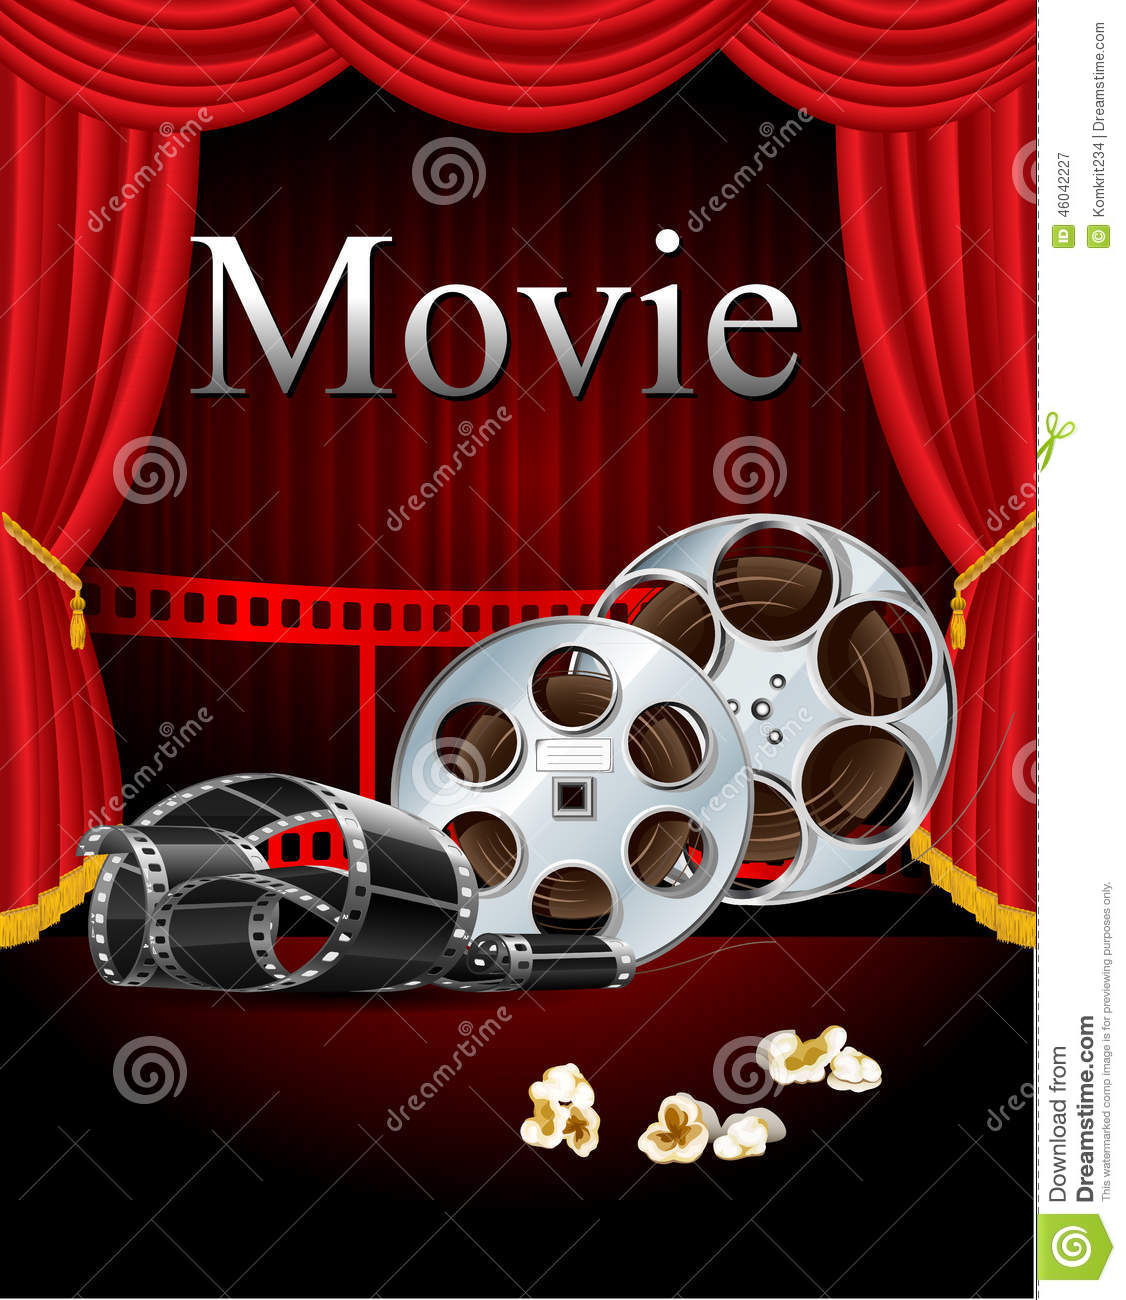 Film Movies Cinema With Red Curtain In The Theater Stock Vector Illustration Of Detailed 46042227